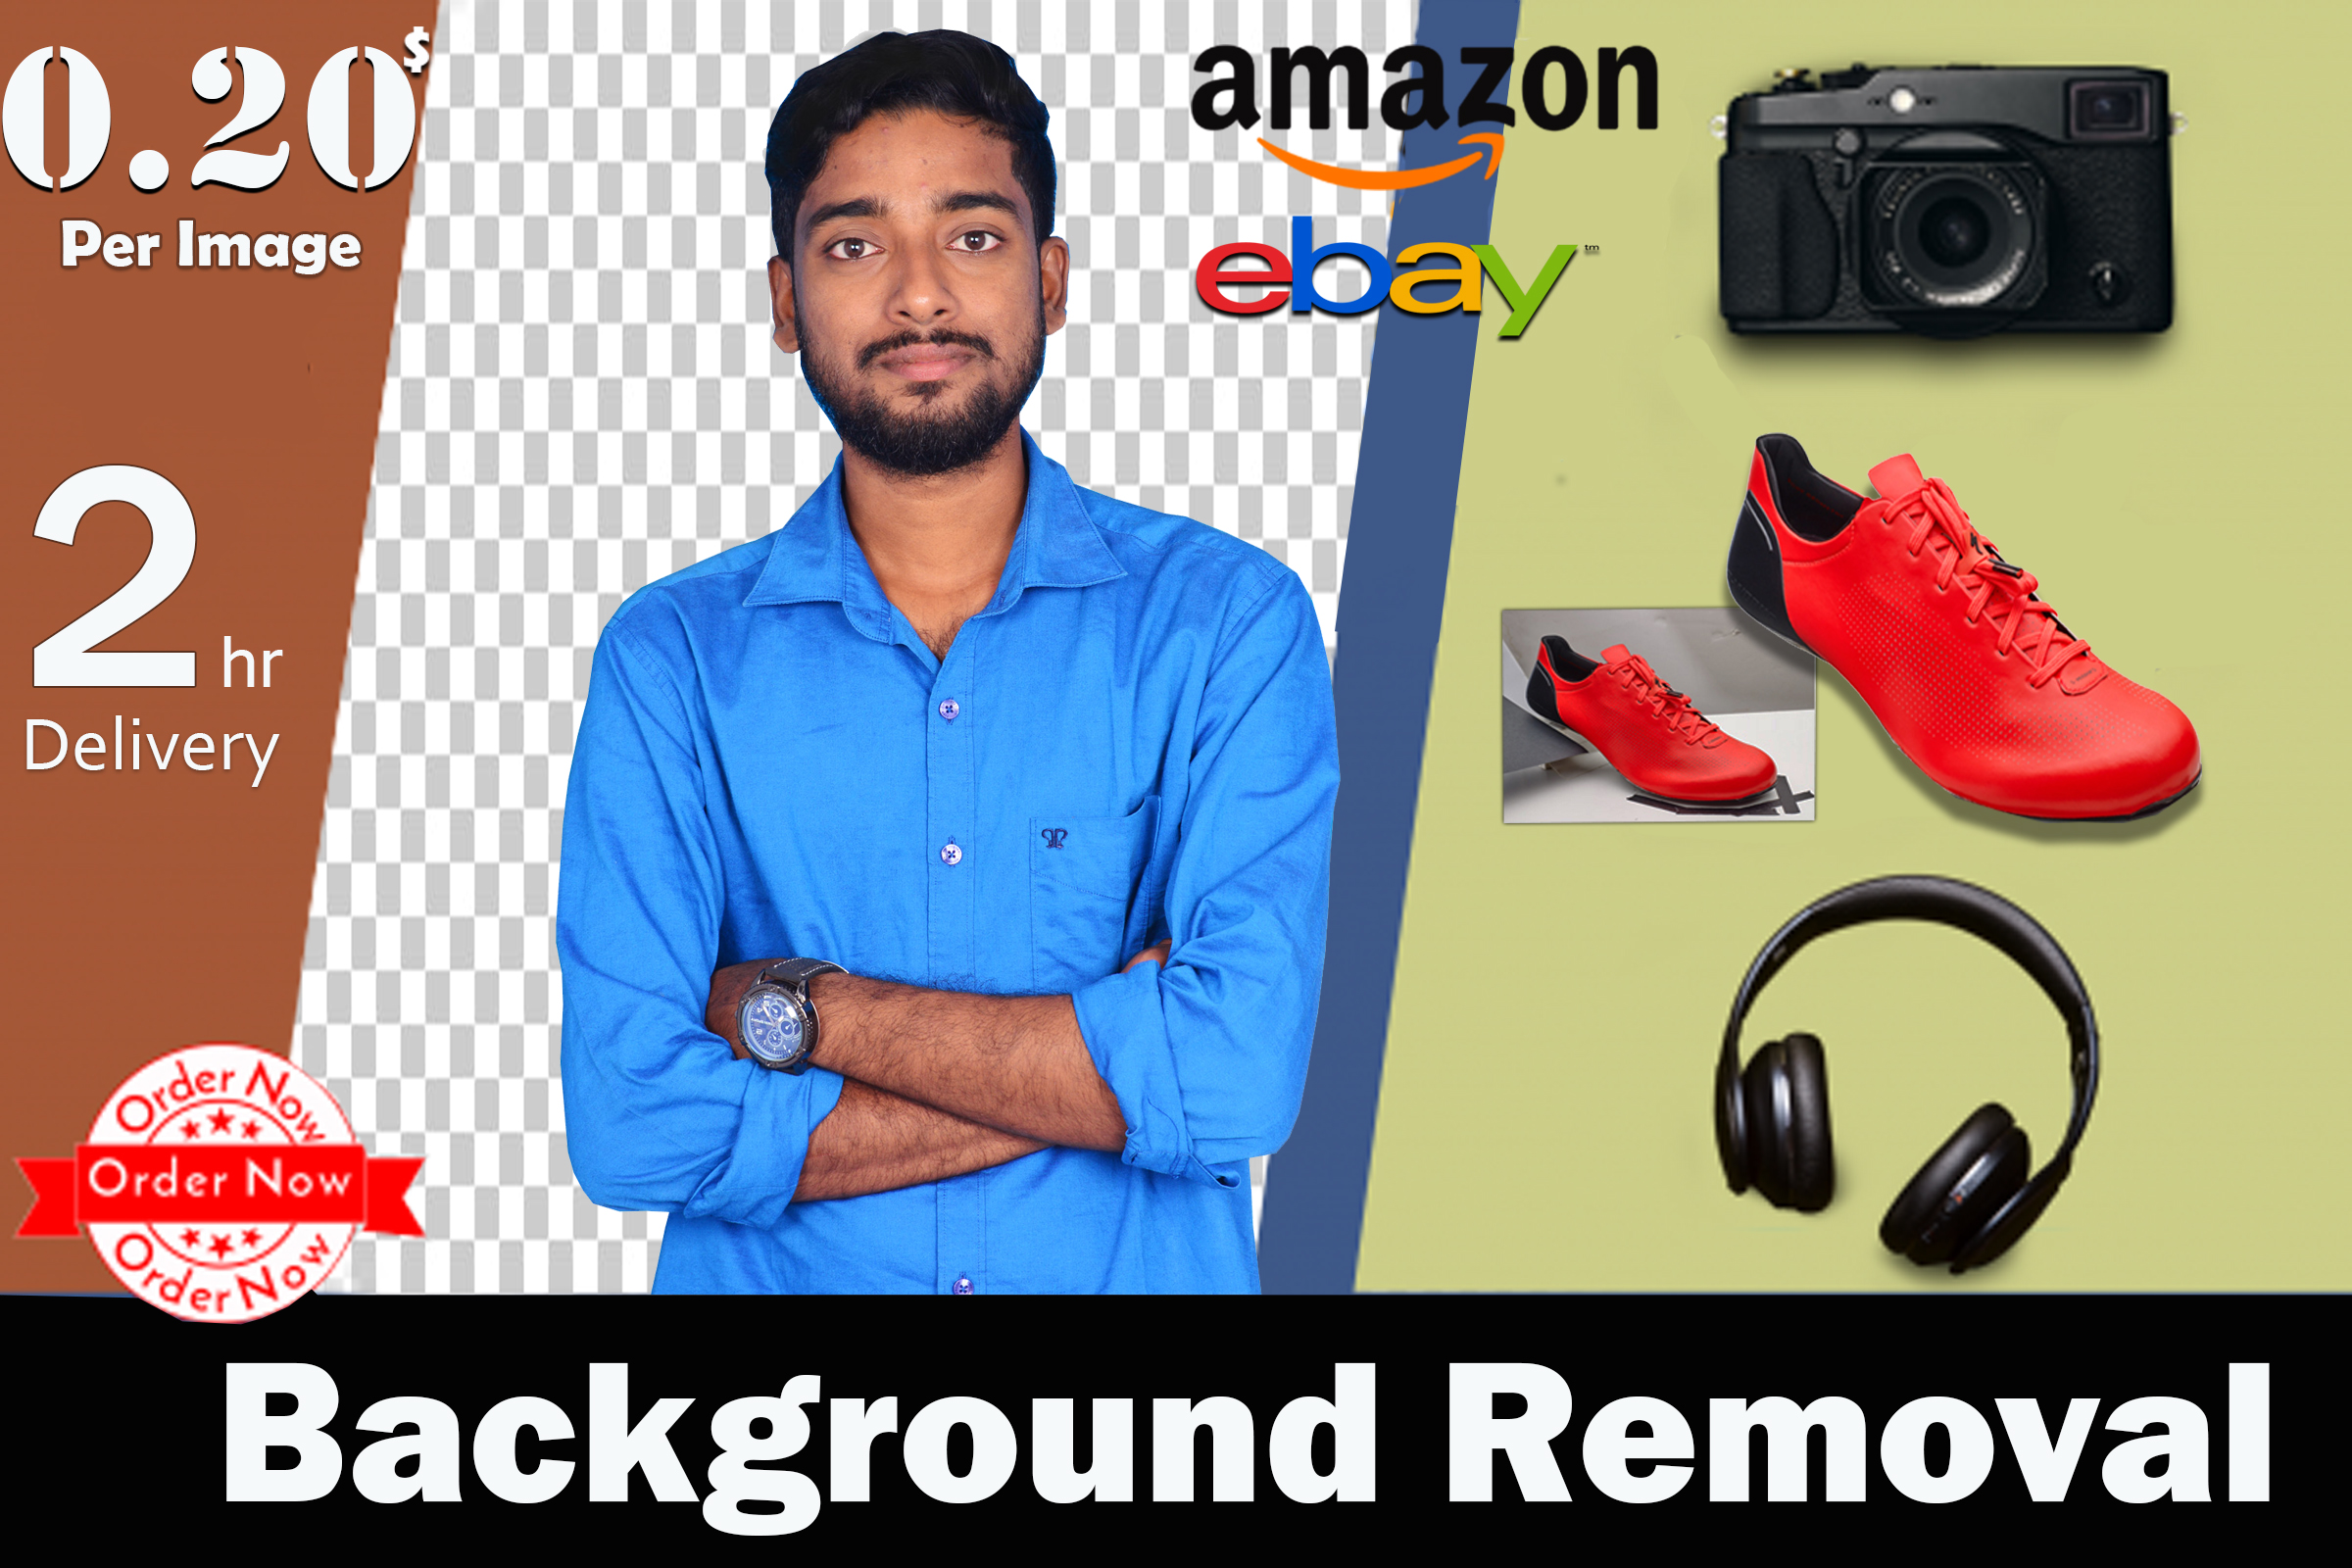 Super Fast photoshop editing & background removal,crop,resoze ,remove watermark & vector art